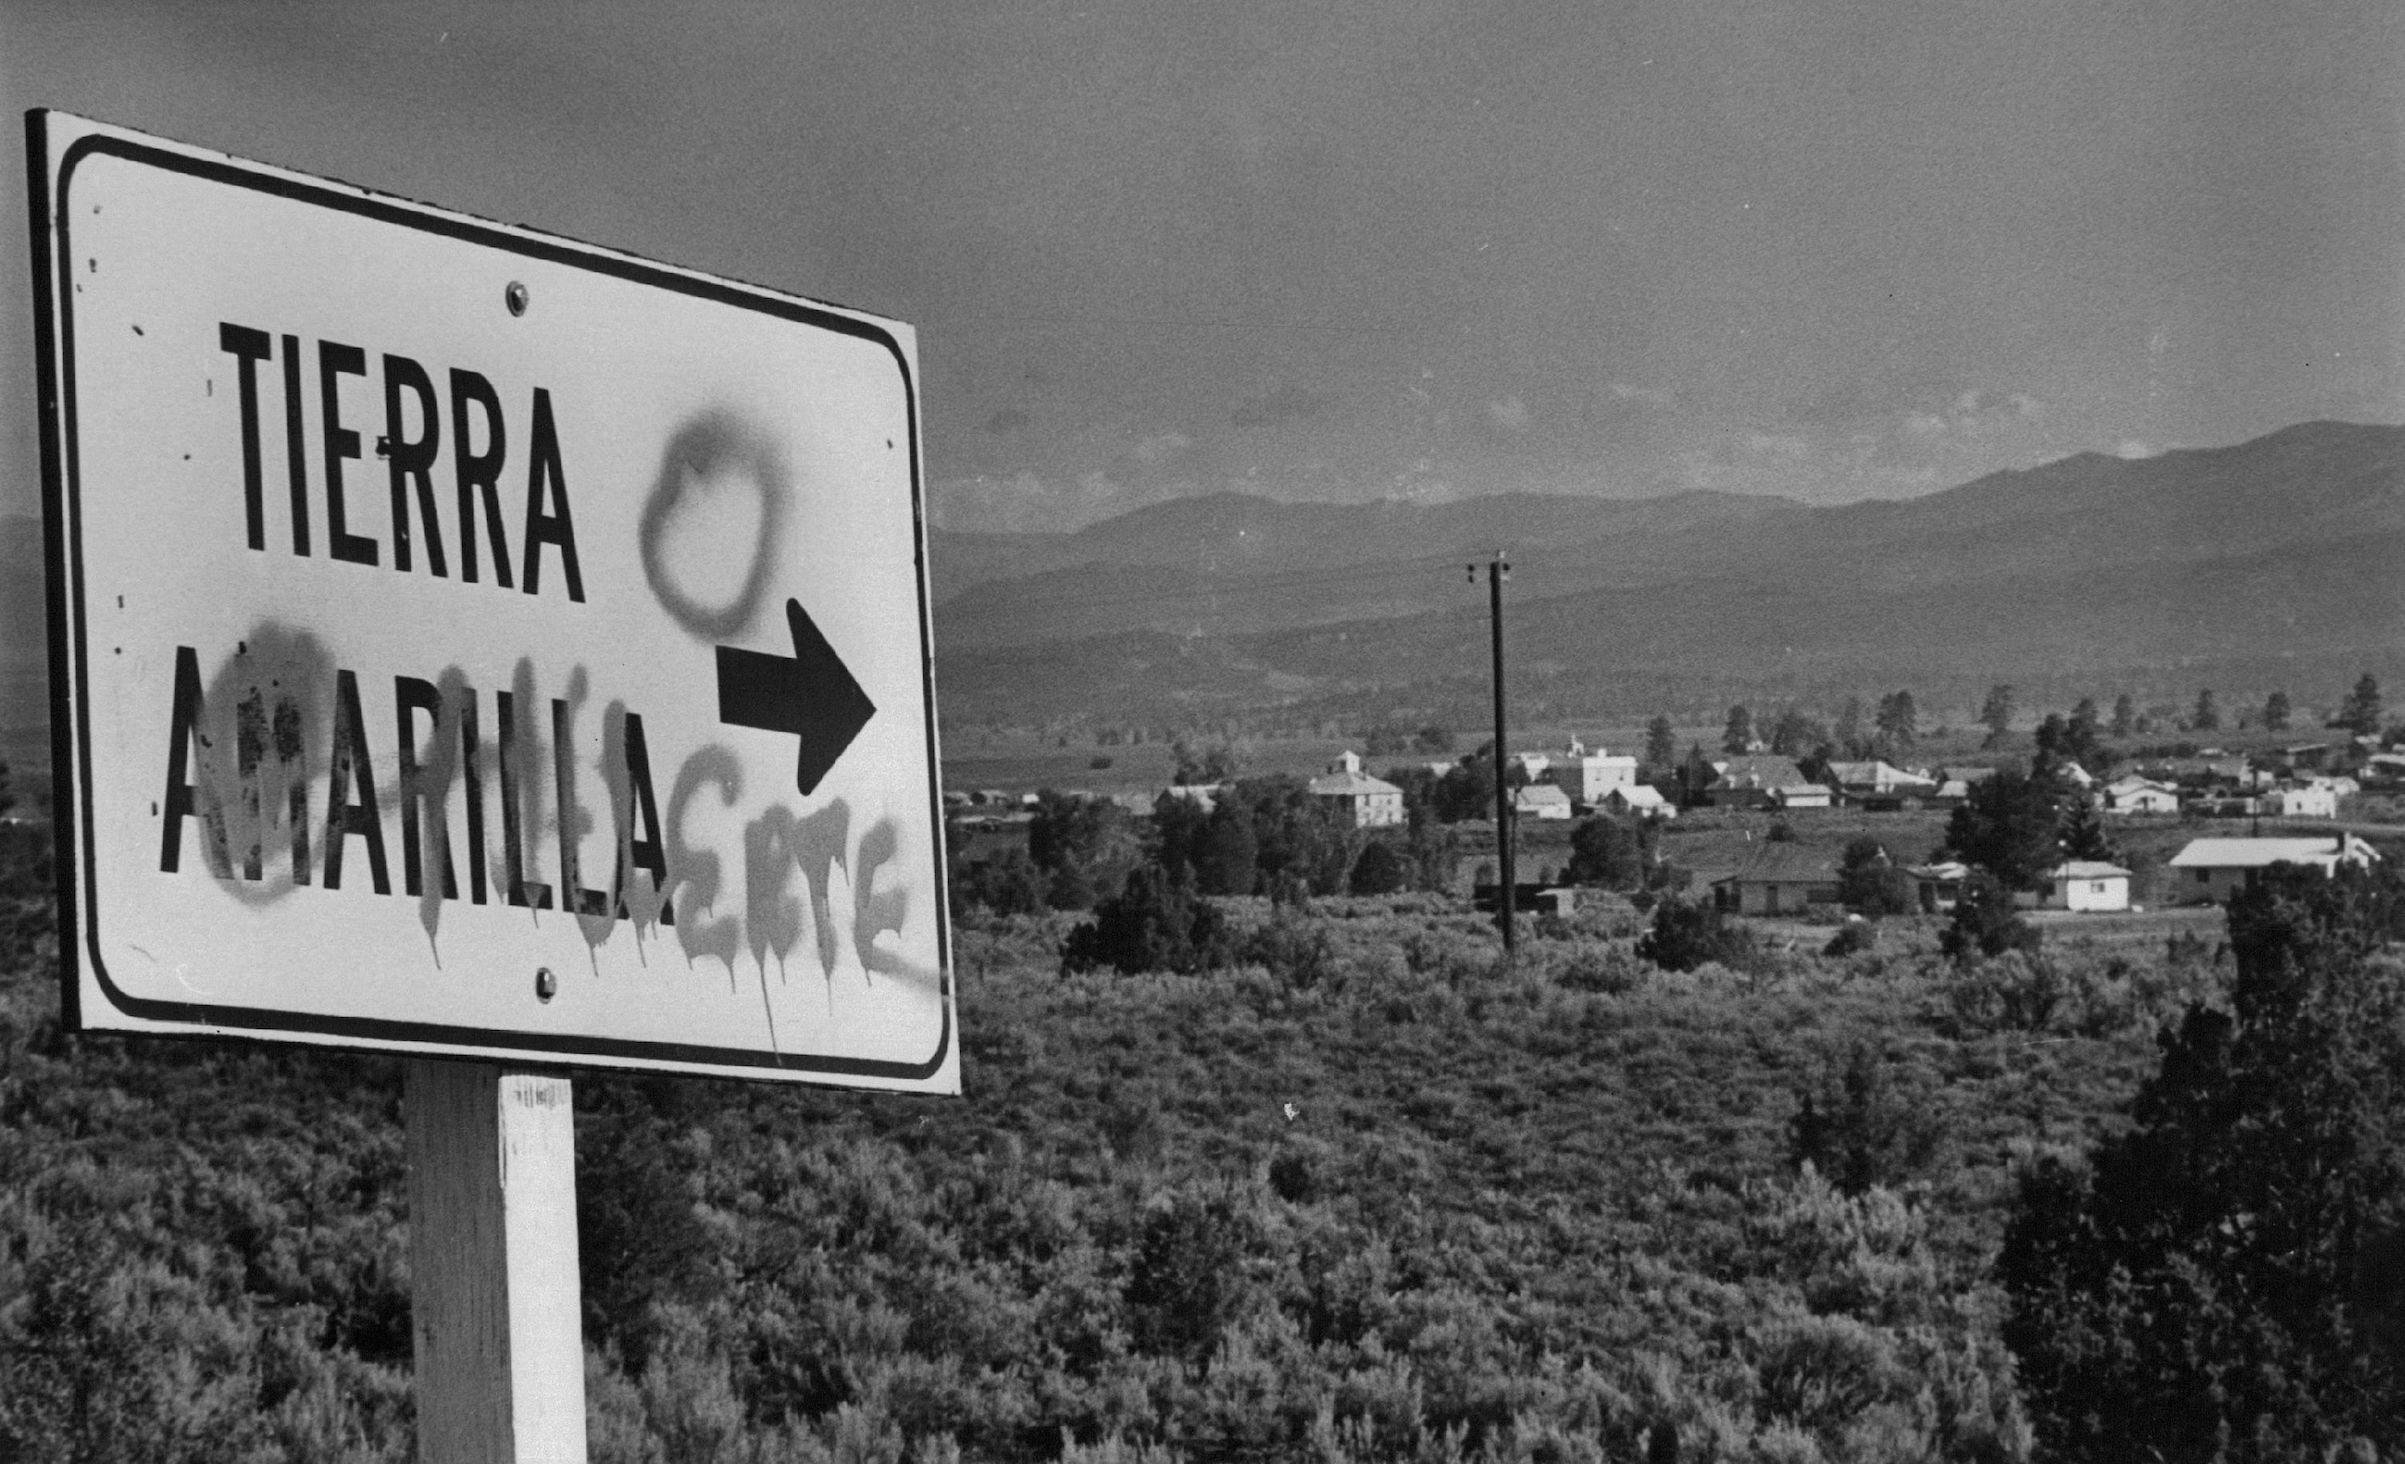 The road sign marking Tierra Amarilla, N.M., has been changed to read Tierra O Muerte, land or death, in the continuing land grant struggle. 1976.